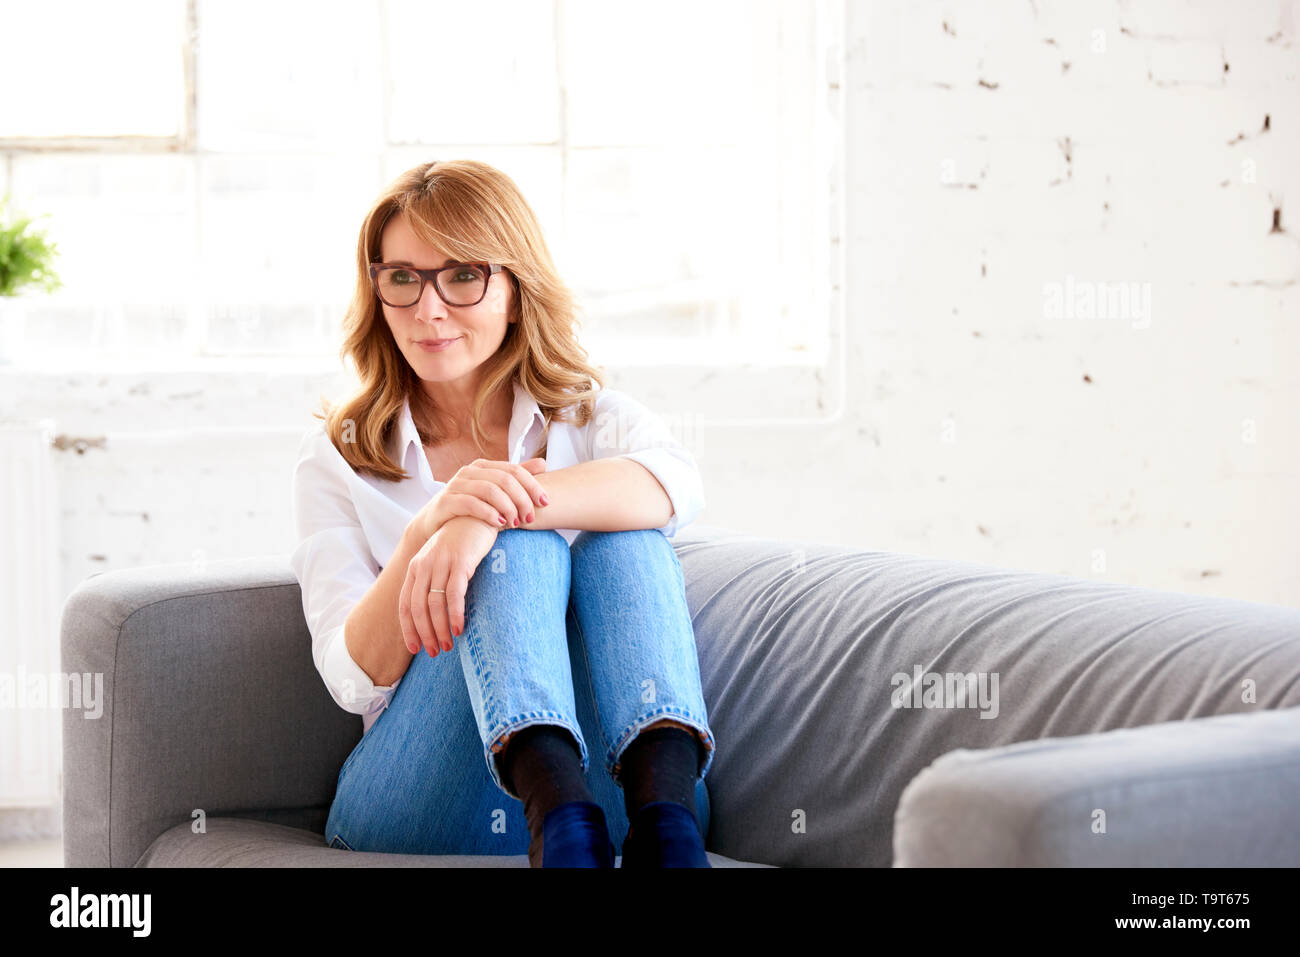 Portrait shot of thinking middle aged woman relaxing on sofa. - Stock Image